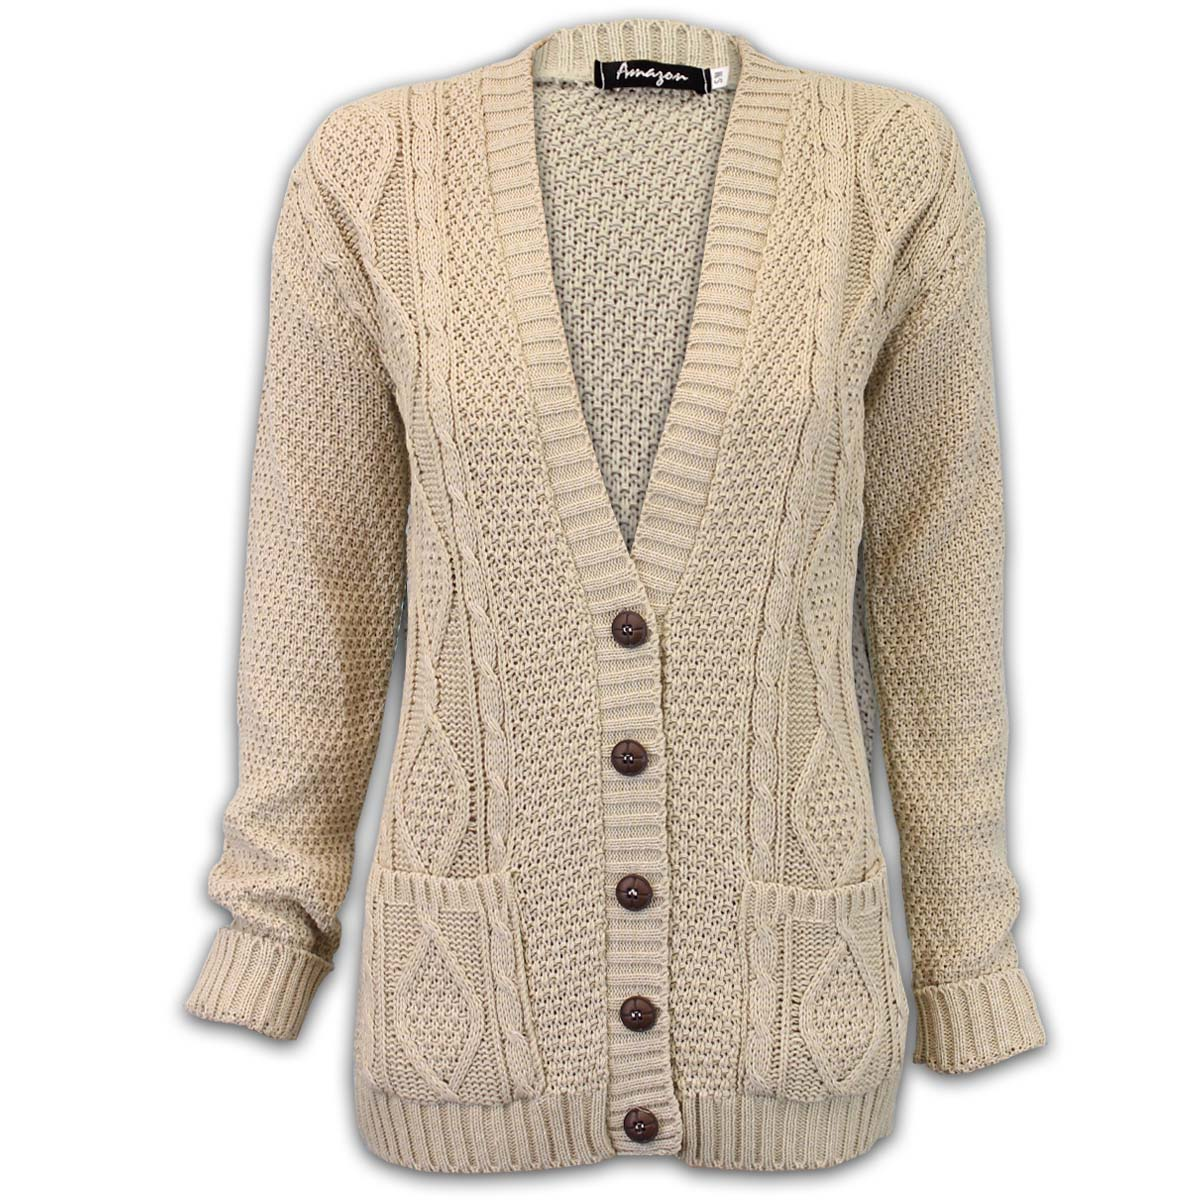 Womens Cable Knit Cardigan Sweaters Hooded Open Front Buttons Closure Outerwear. from $ 37 99 Prime. out of 5 stars PattyBoutik. Women's Mock Neck Cable Knit Cardigan $ 53 99 Prime. out of 5 stars Simplee Apparel. Simplee Women's Casual Open Front Long Sleeve Knit Cardigan Sweater Coat with Pockets.